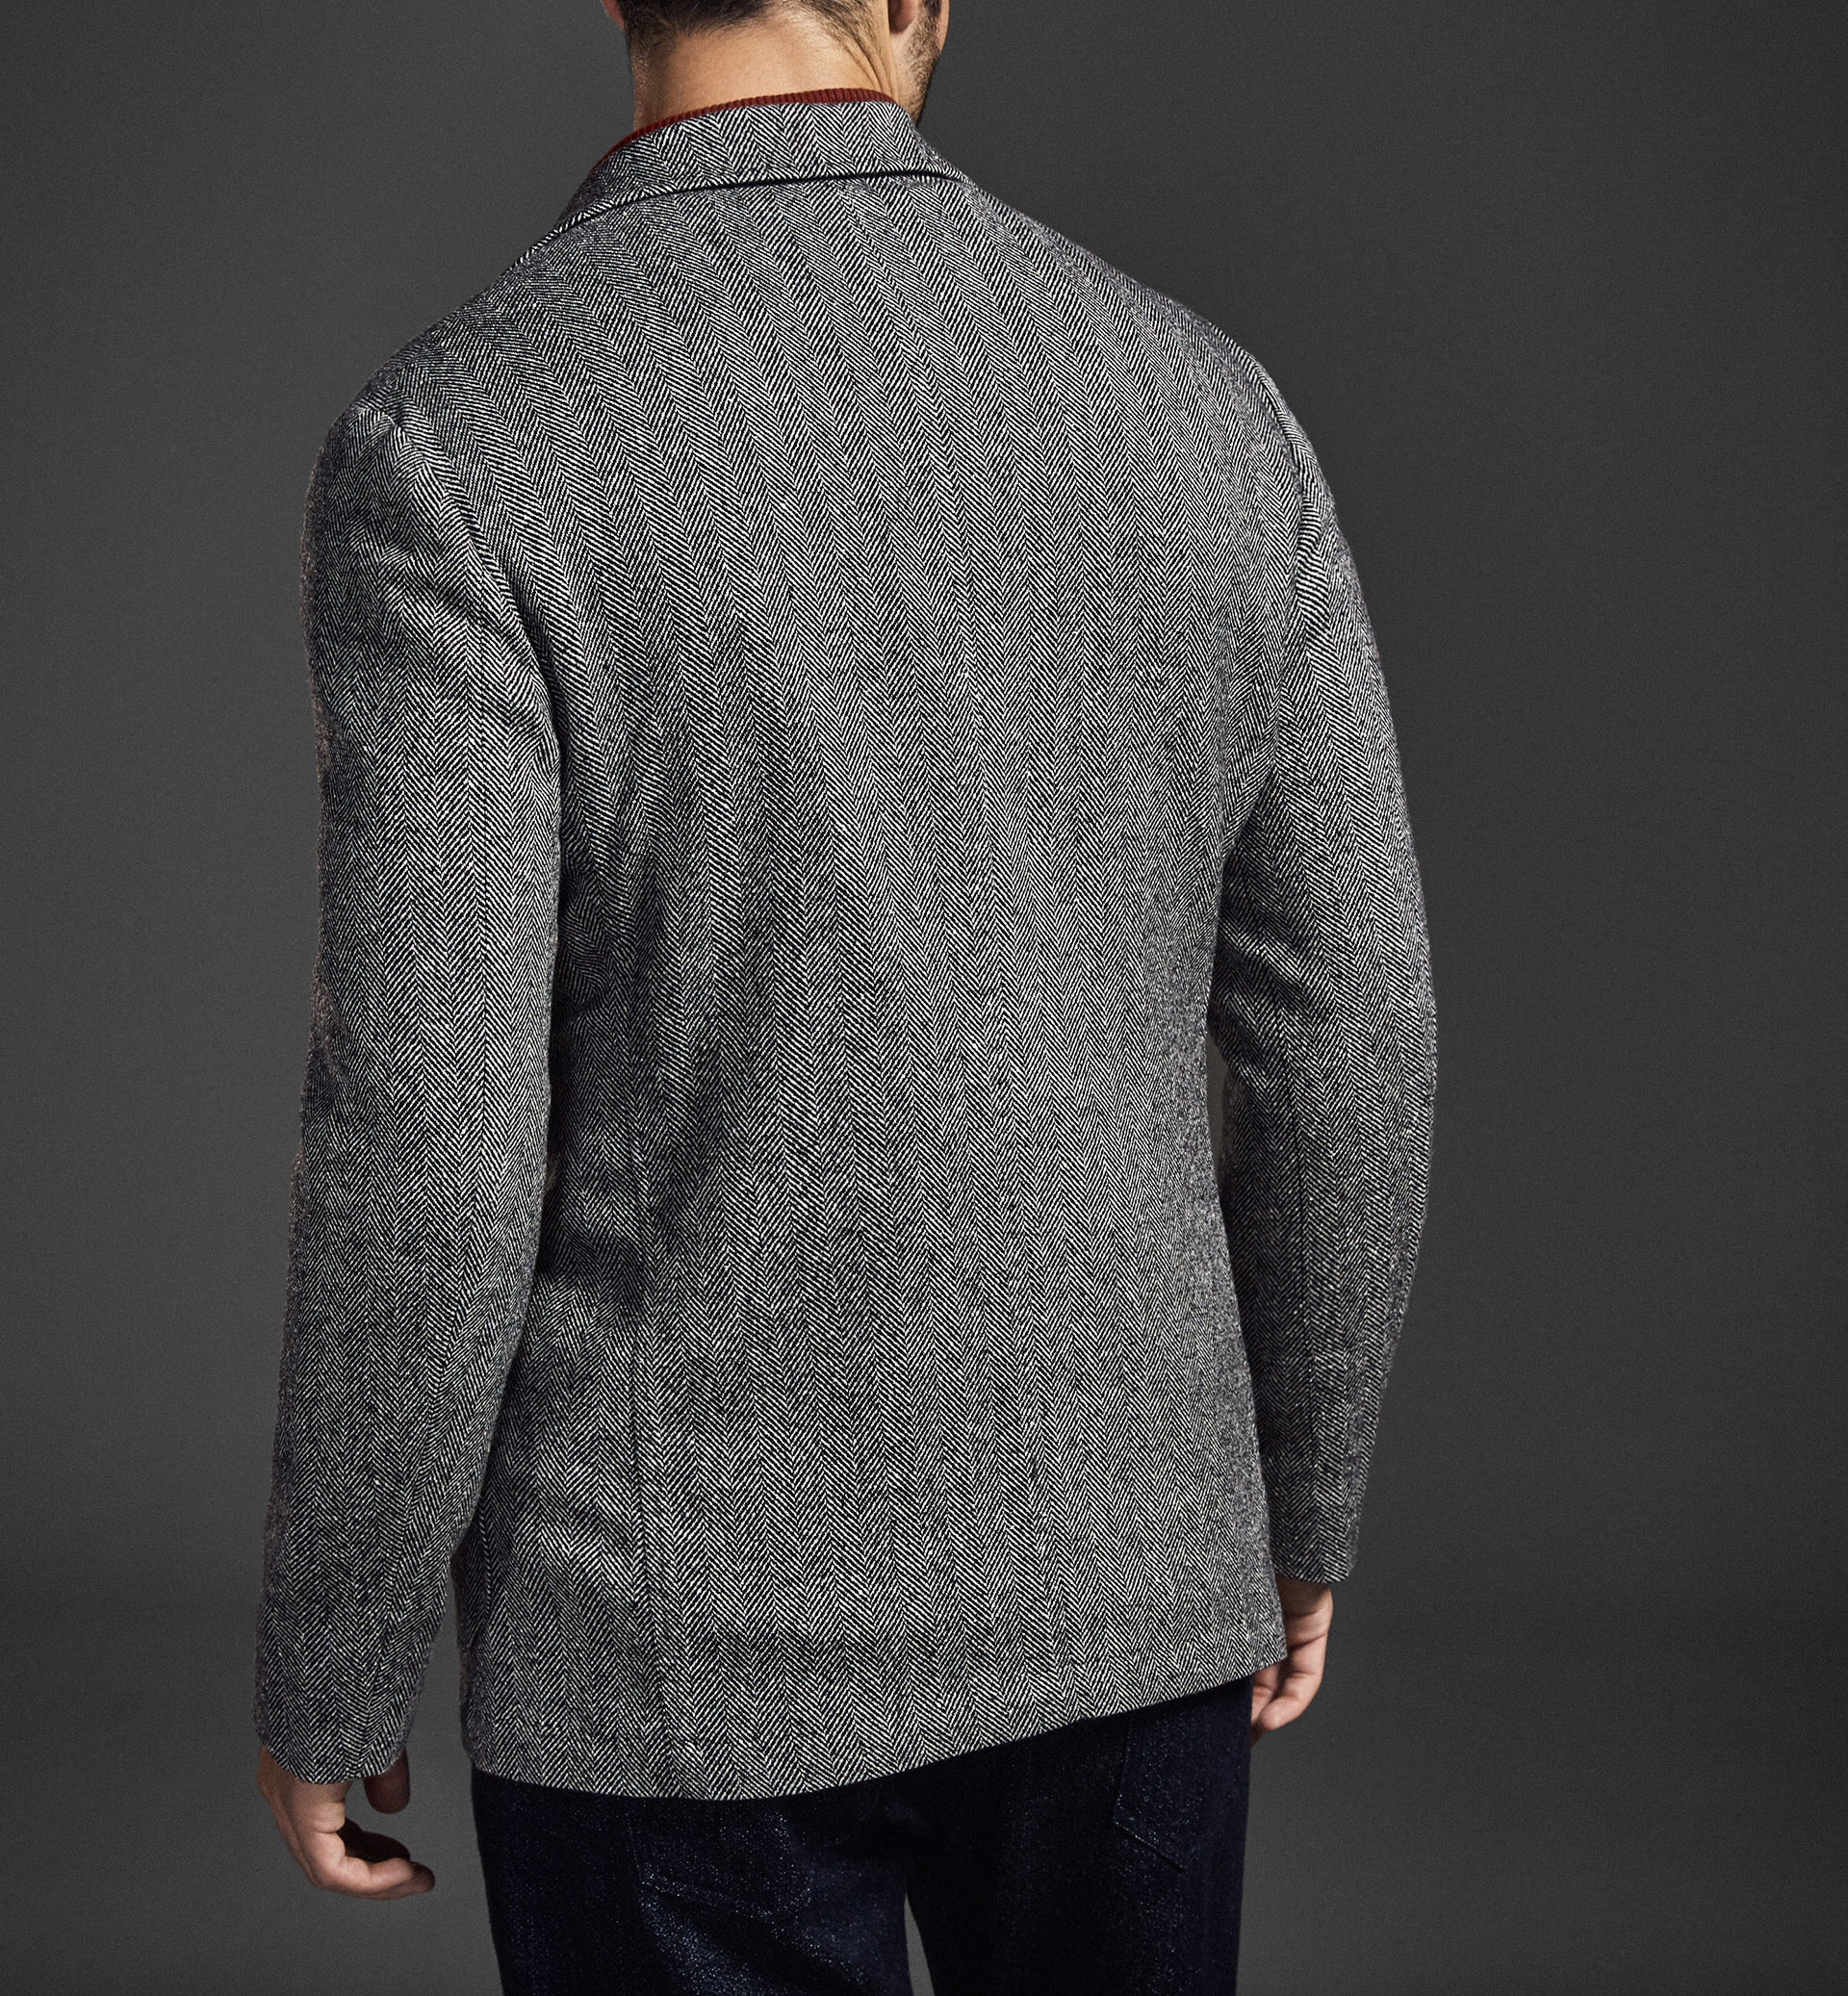 LIMITED EDITION WOOL HERRINGBONE BLAZER